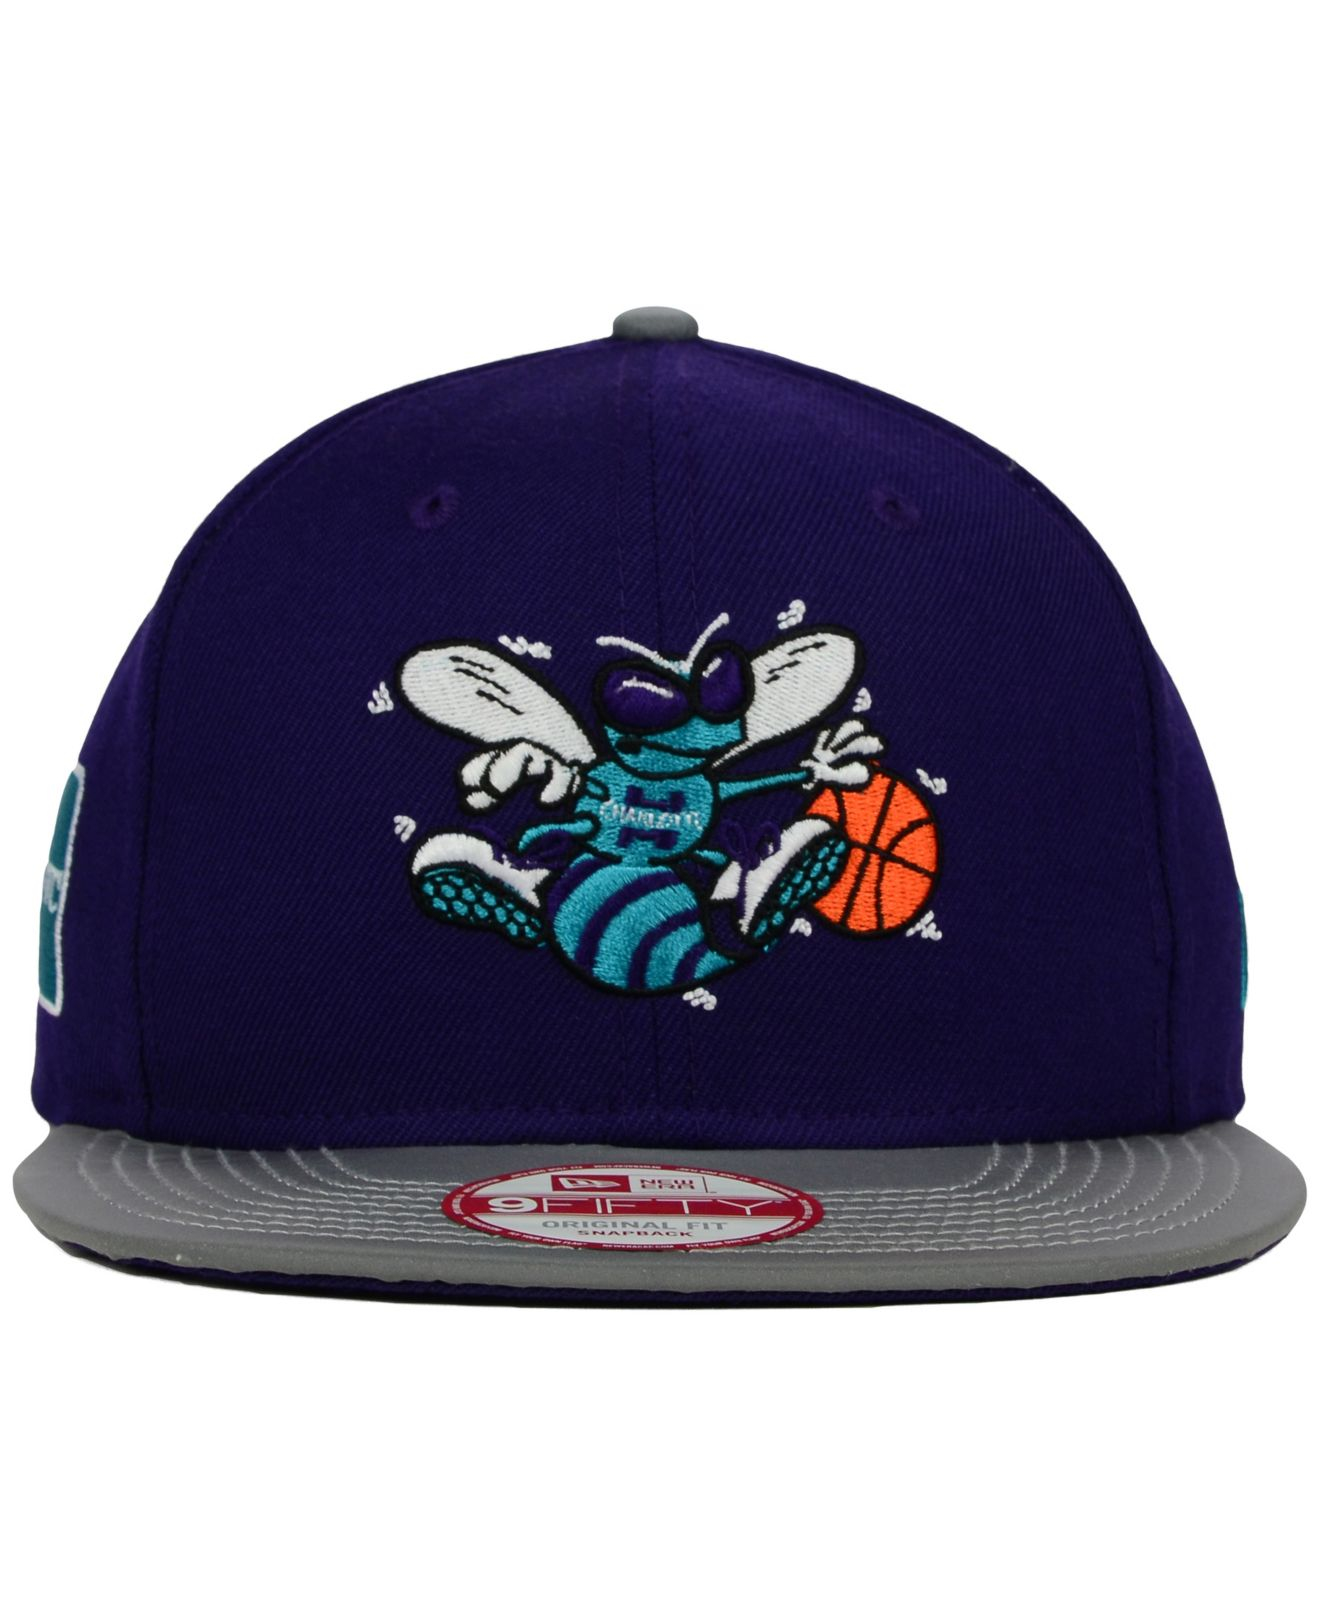 reputable site 50c45 7812c ... switzerland lyst ktz charlotte hornets reflect 9fifty snapback cap in  gray for men 91177 39f70